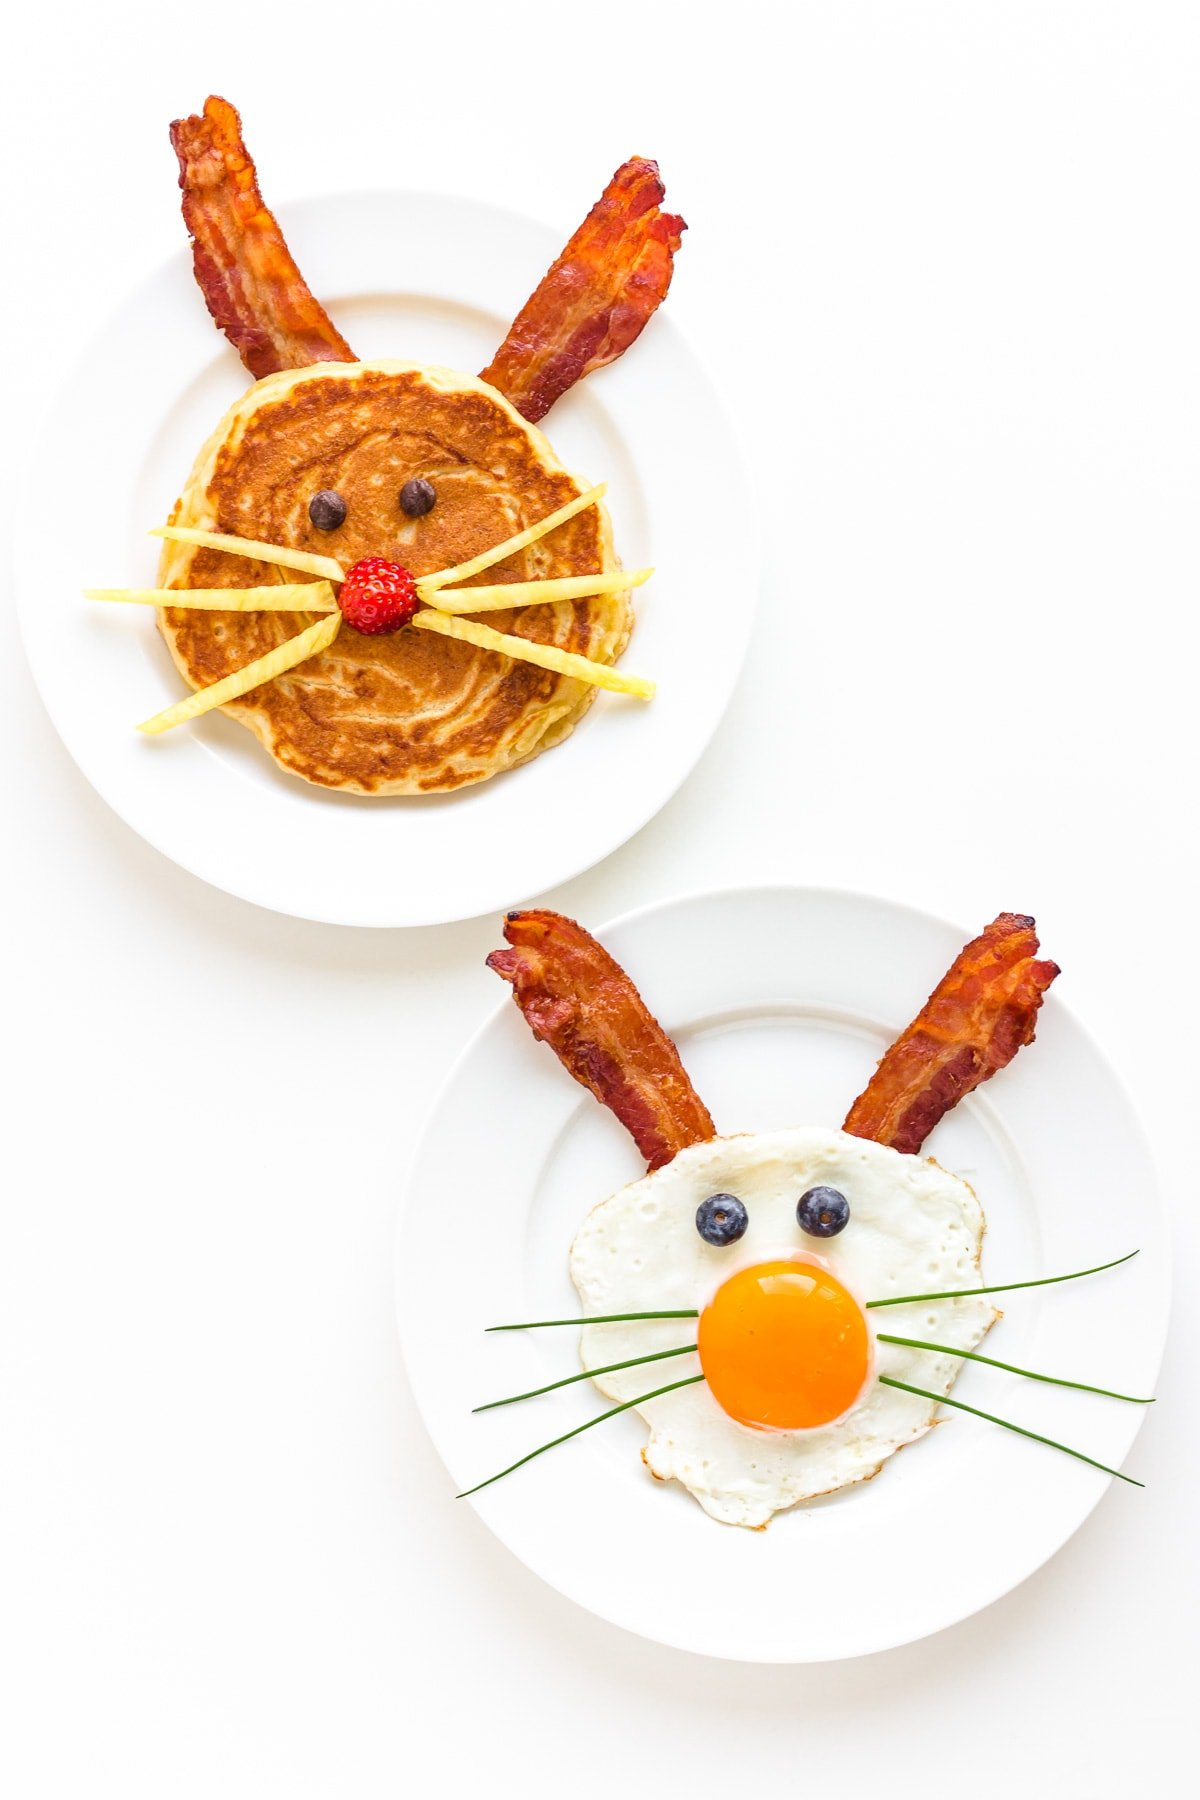 A bunny pancake with bacon ears and a sunny side up fried egg and bacon bunny on separate white plates.